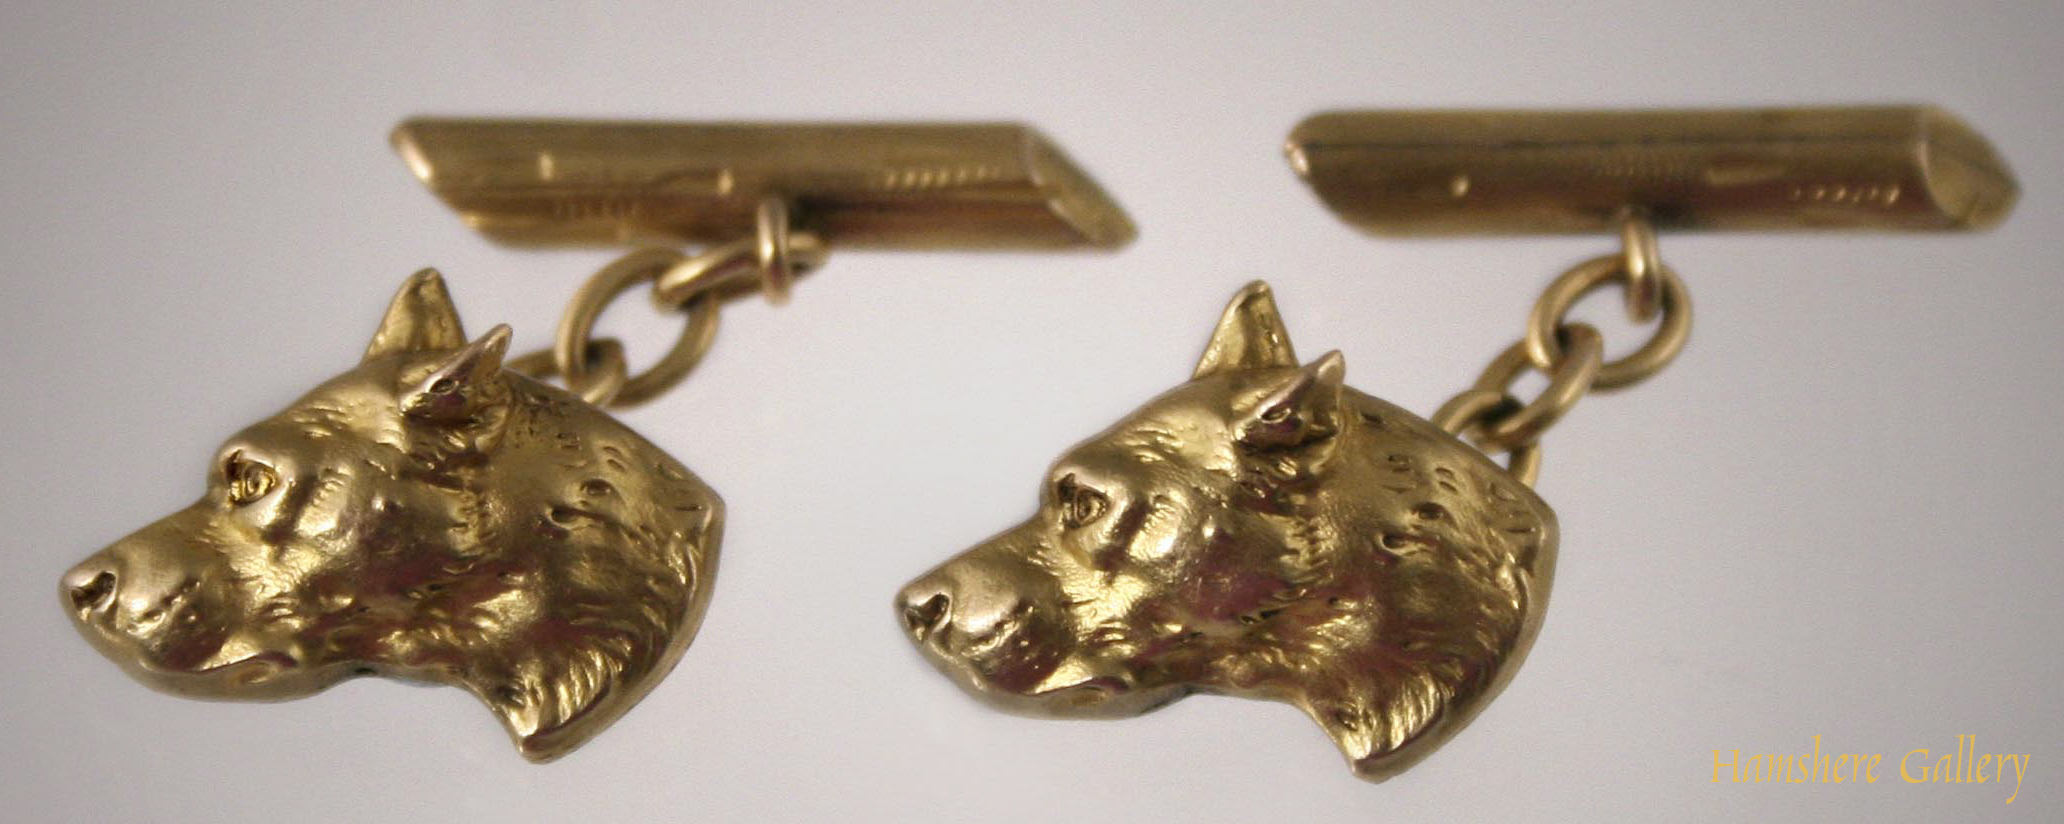 Click to see full size: French Sheepdog fix cufflinks